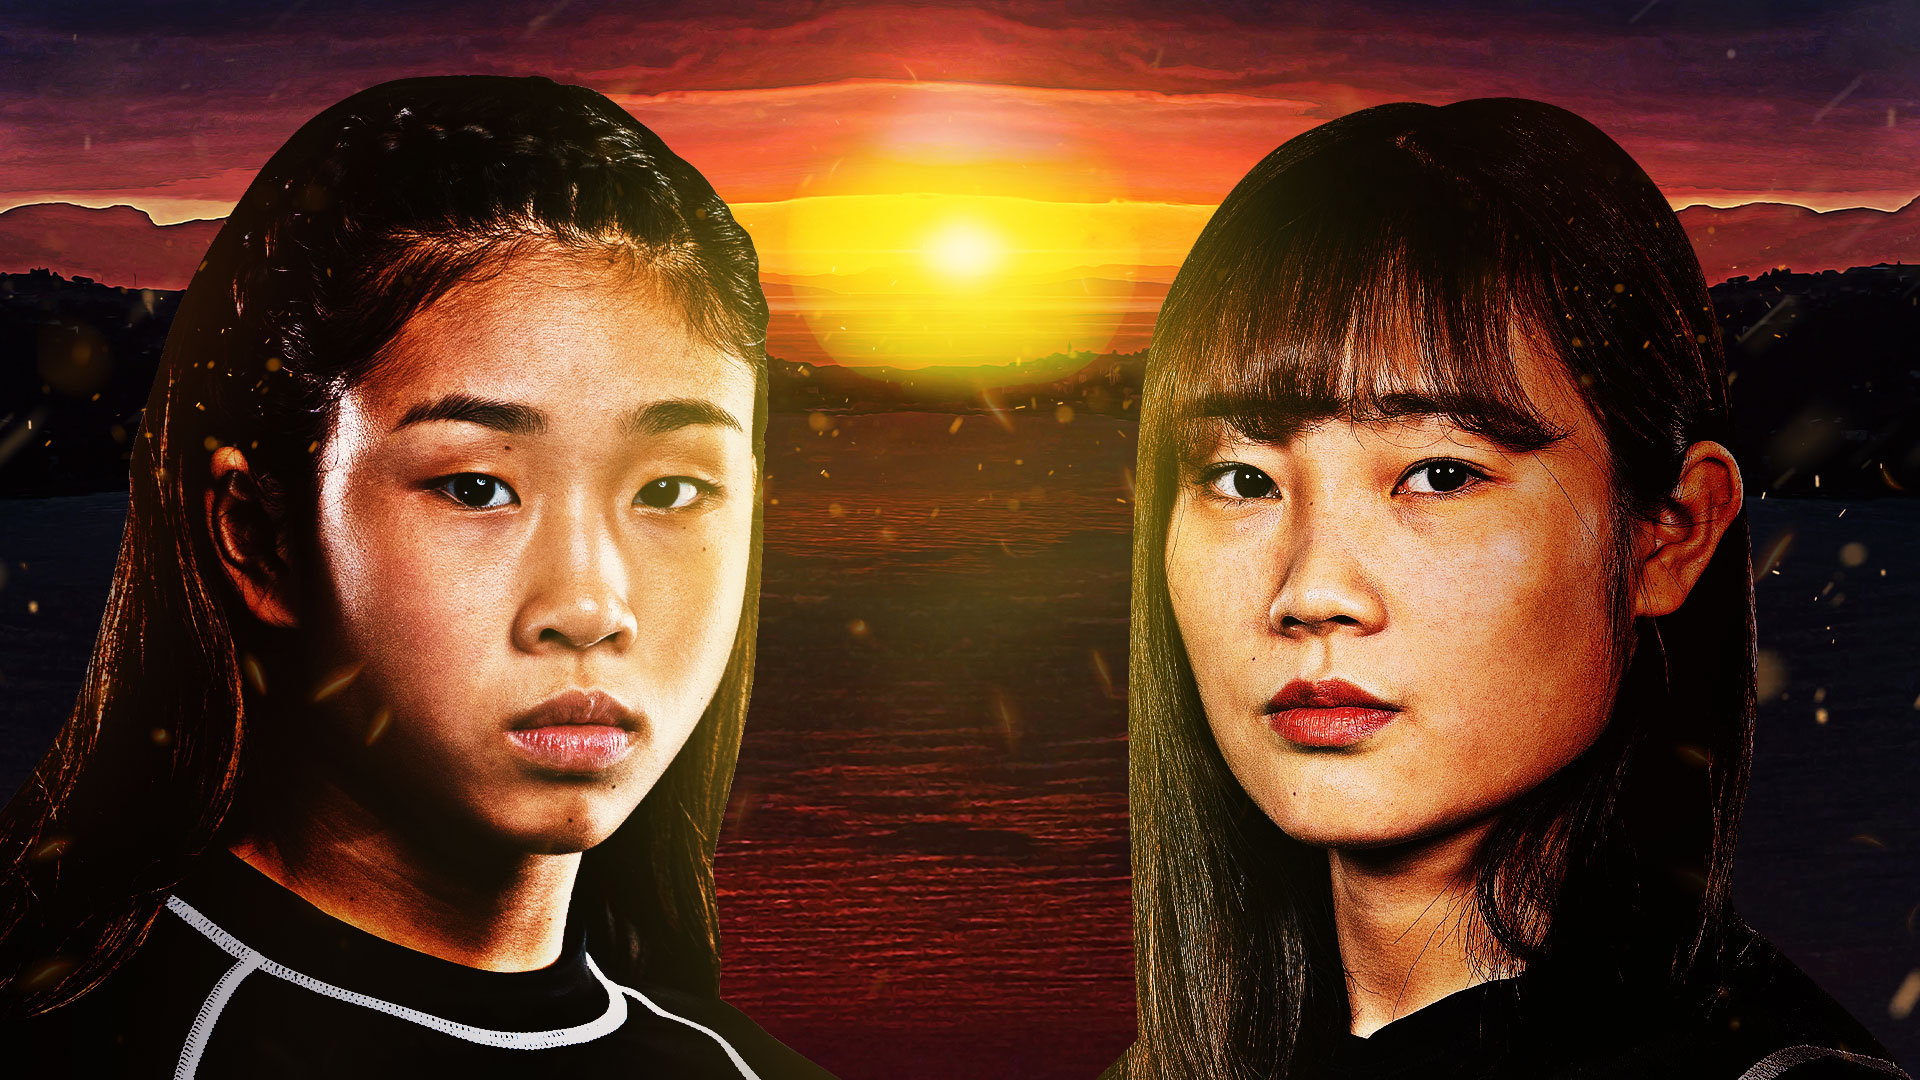 Victoria Lee fights Wang Luping at ONE: BATTLEGROUND on 30 July